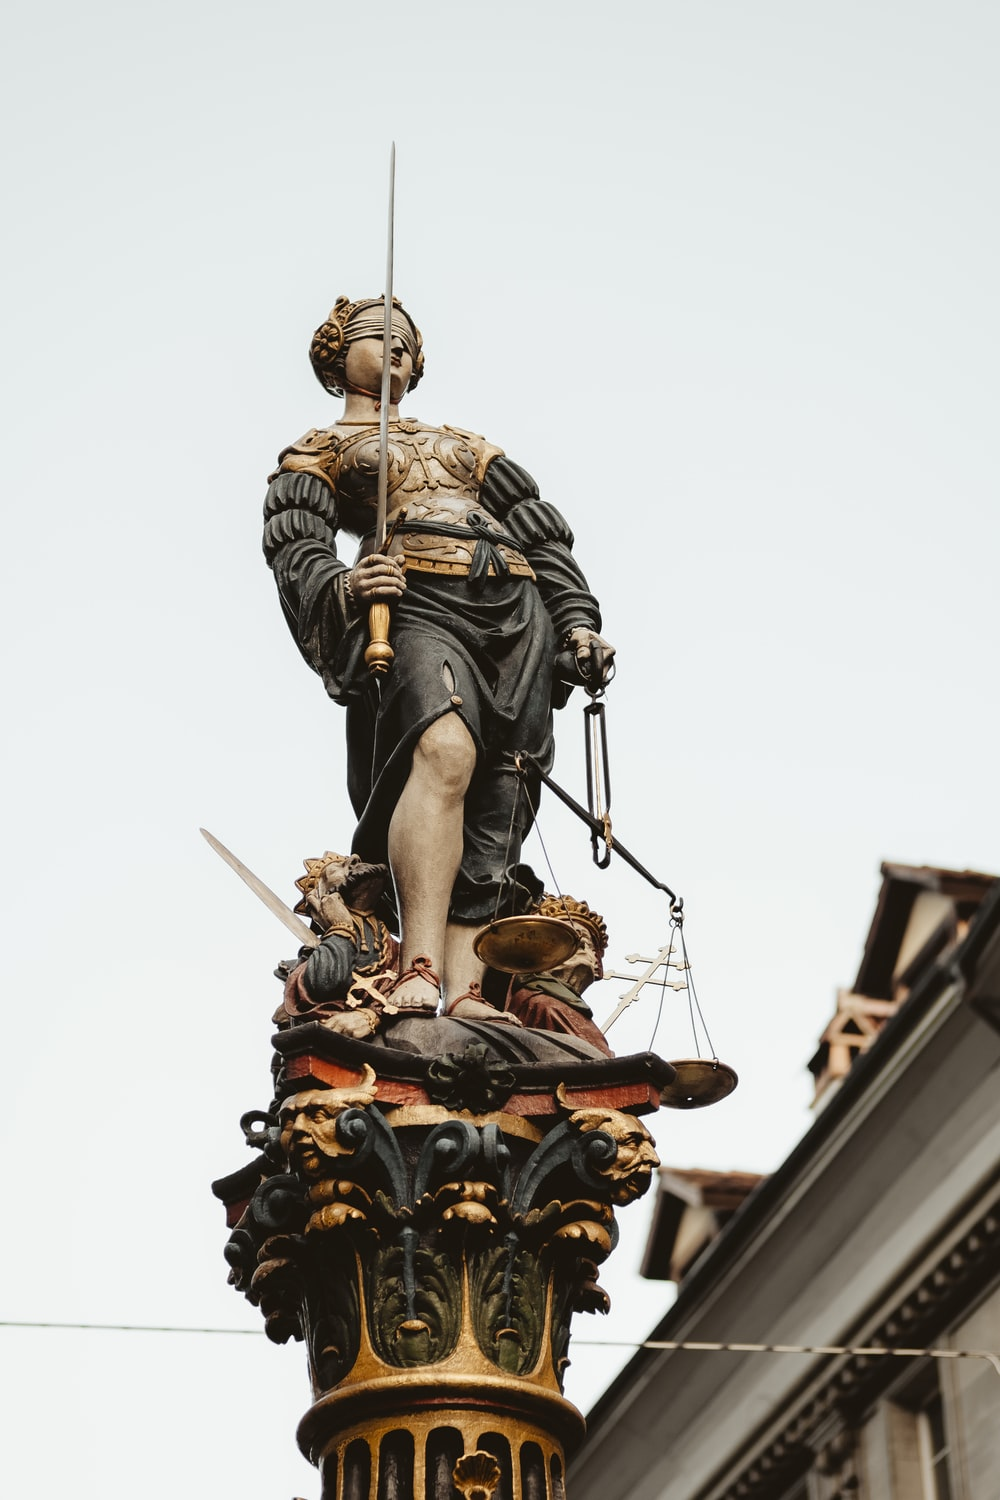 woman holding sword and balance scale statue under white sky